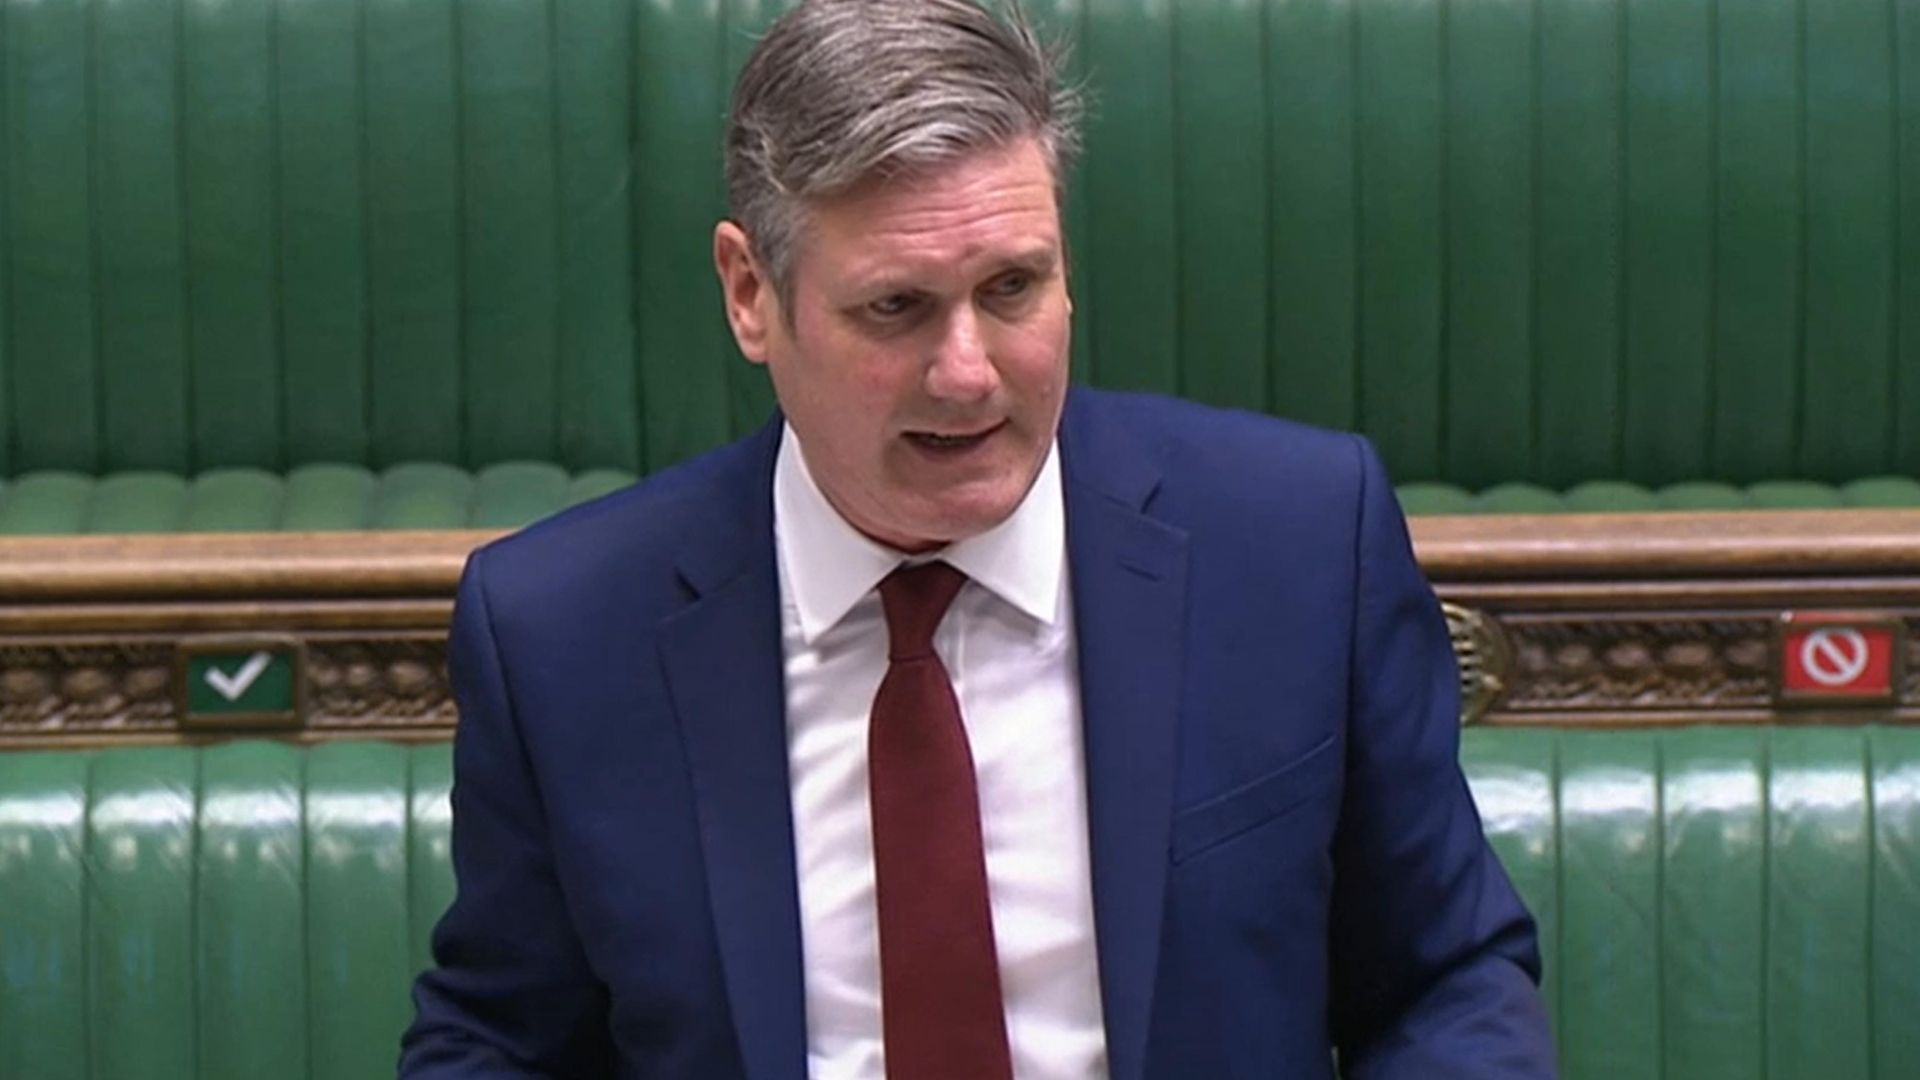 Labour Party leader Keir Starmer responds to prime minister Boris Johnson's statement to the House of Commons - Credit: PA